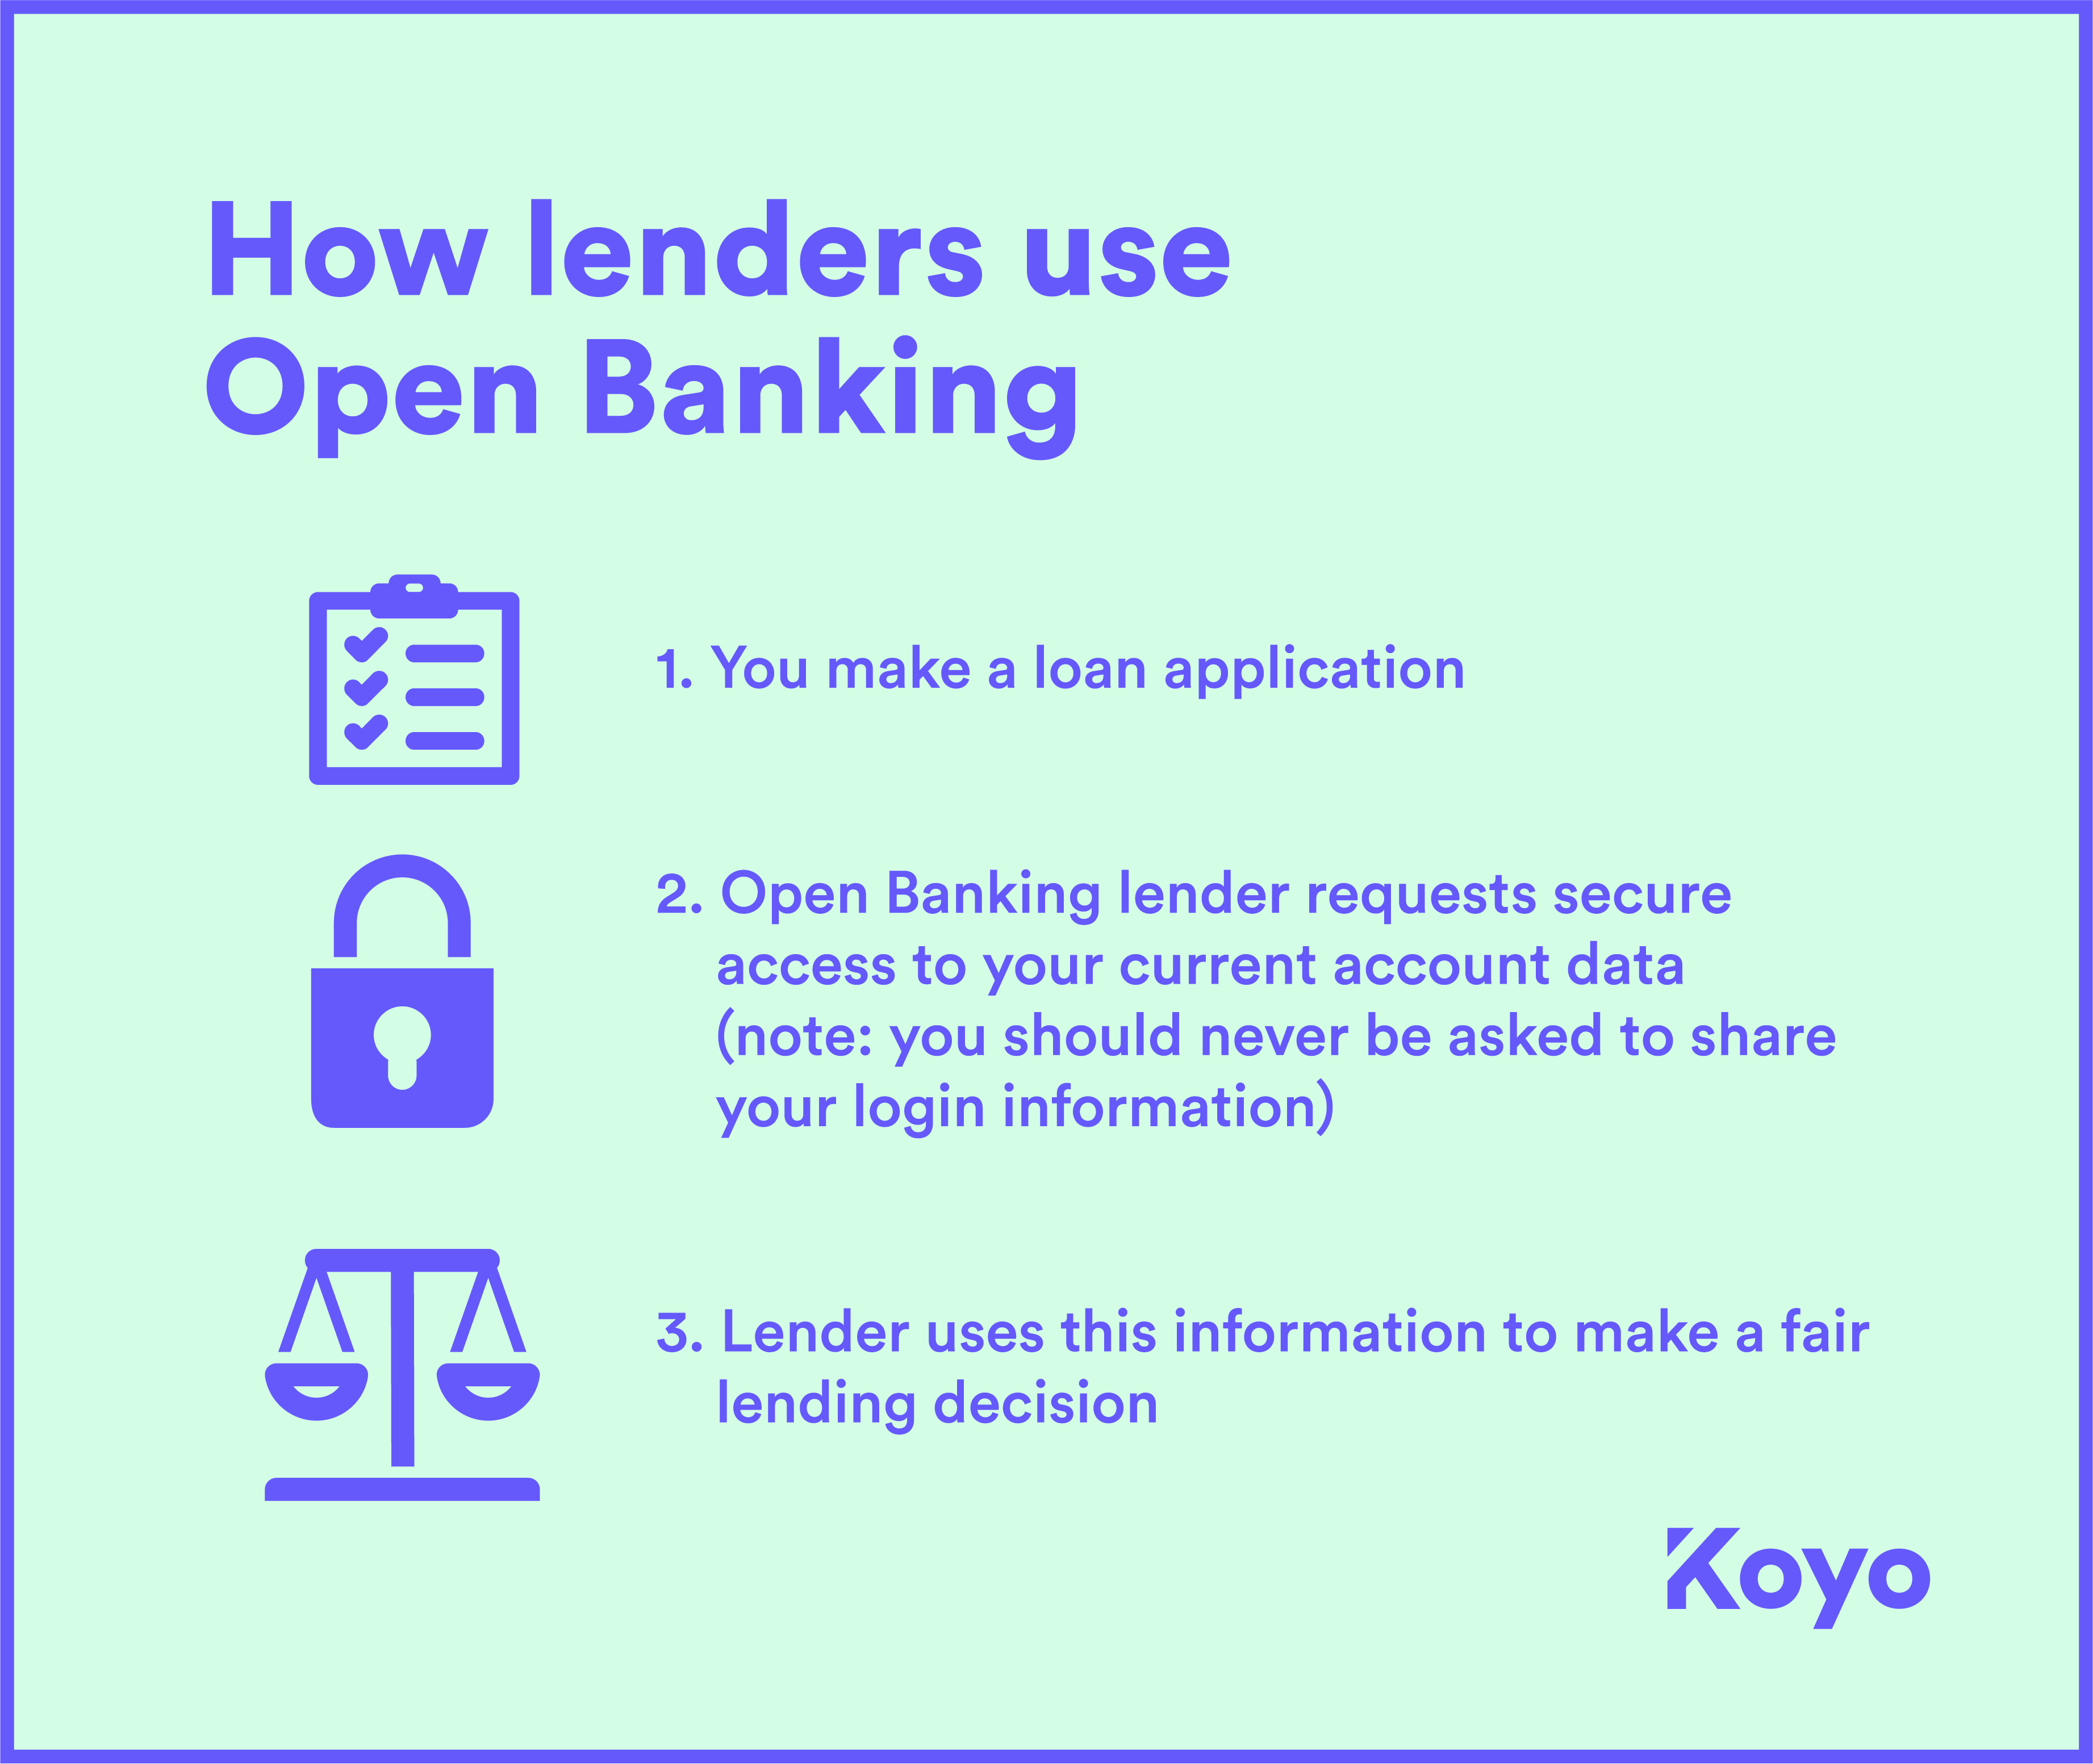 Graphic showing how lenders use Open Banking data to make fairer lending decisions